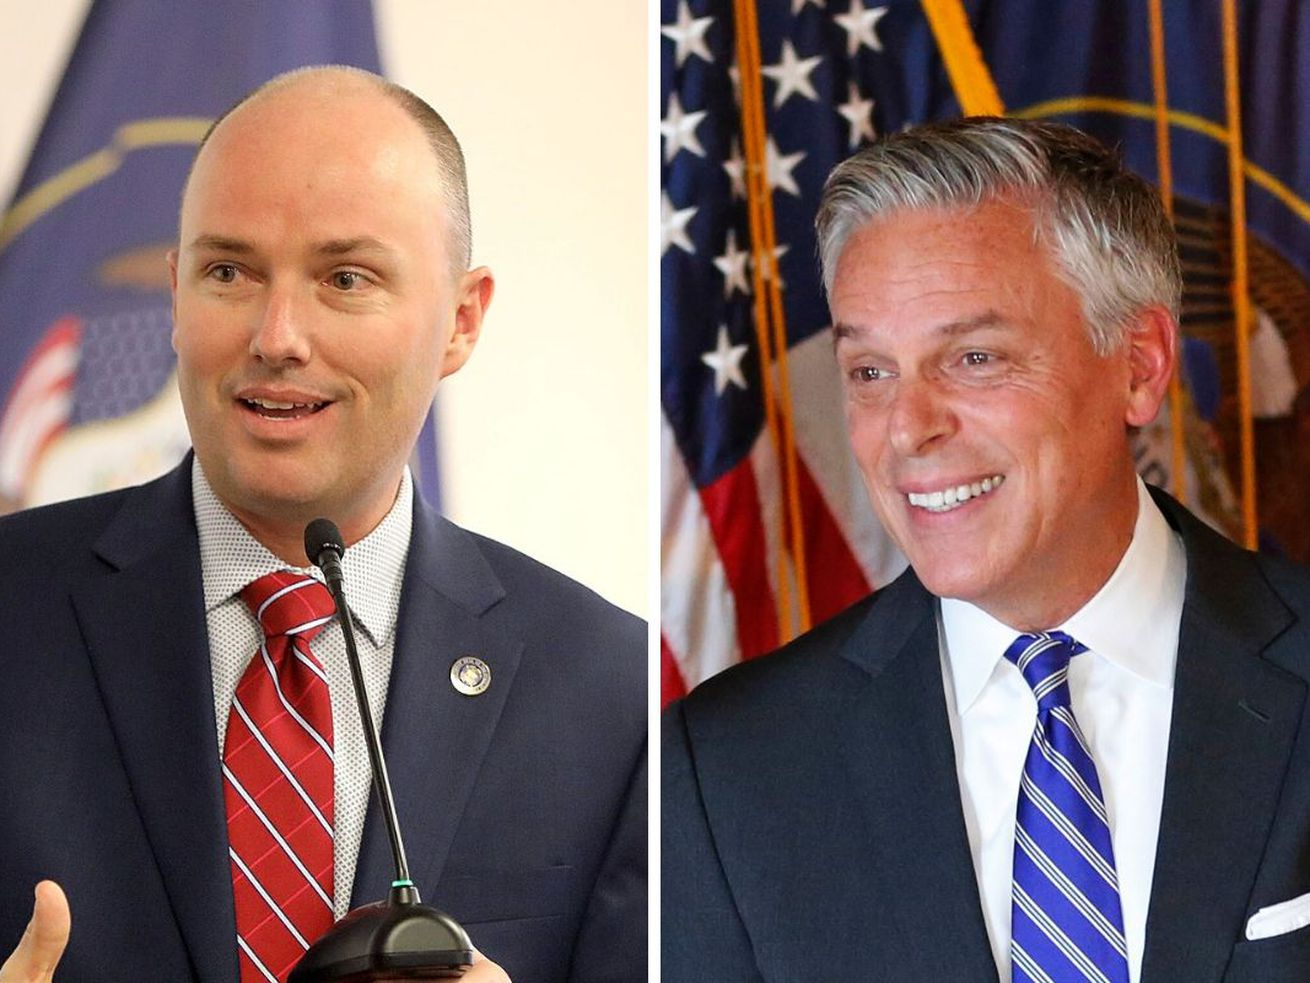 Cox ahead of Huntsman in race for governor, poll shows